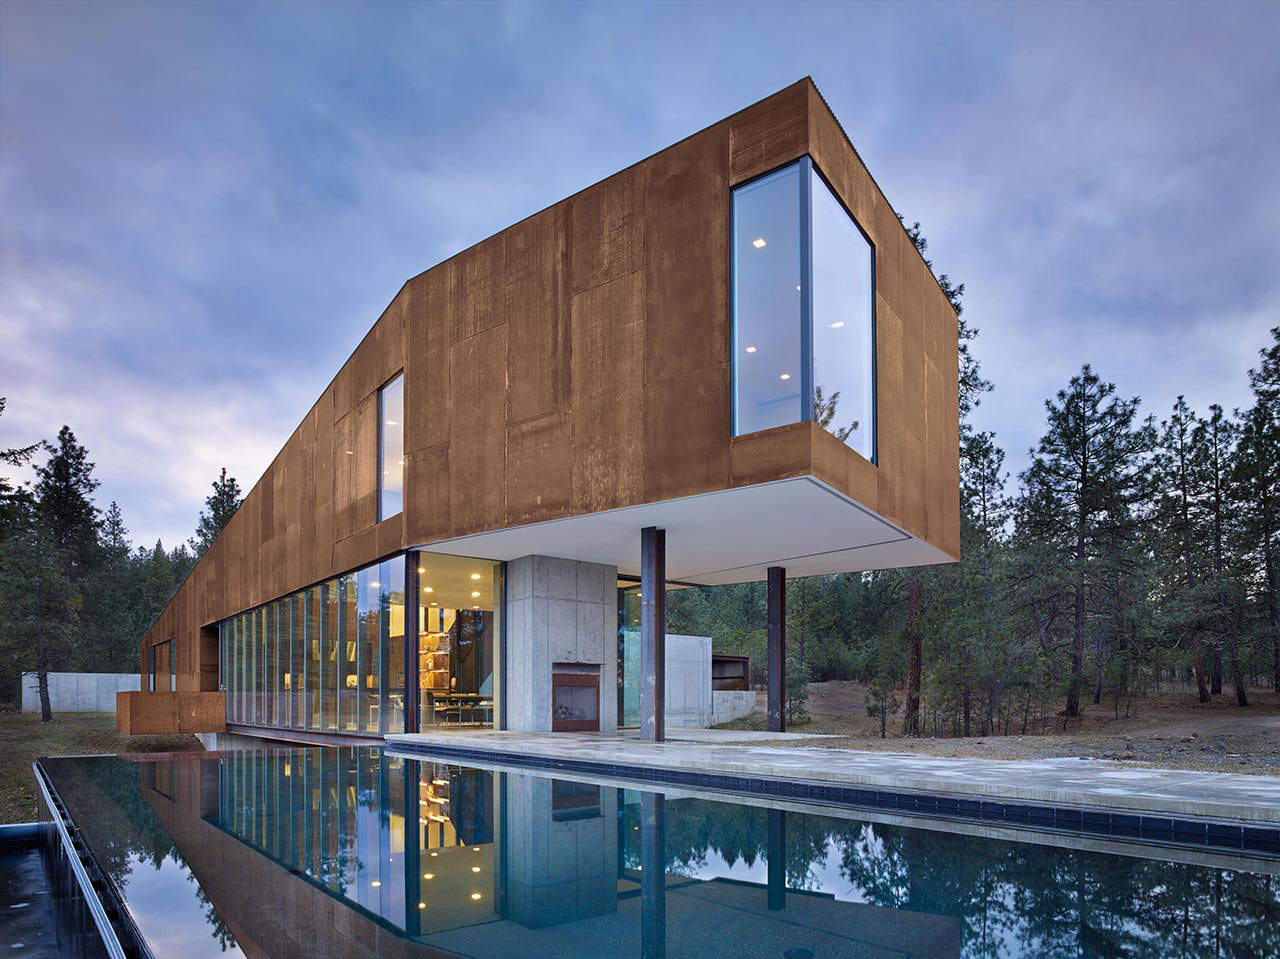 Rimrock Residence, Spokane, Washington, Olson Kundig Architects, Weathered Steel Facade, Photography Benjamin Benschneider